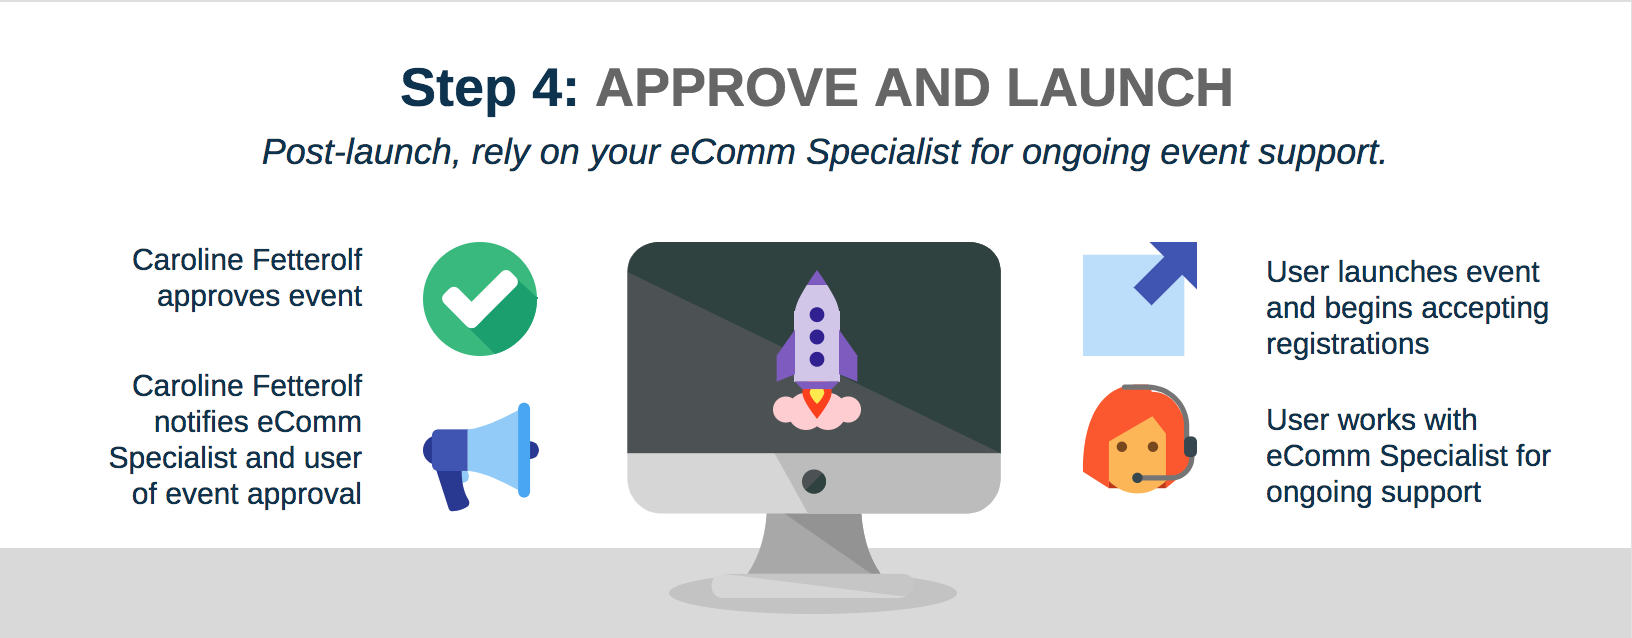 Step 4: Approve and Launch